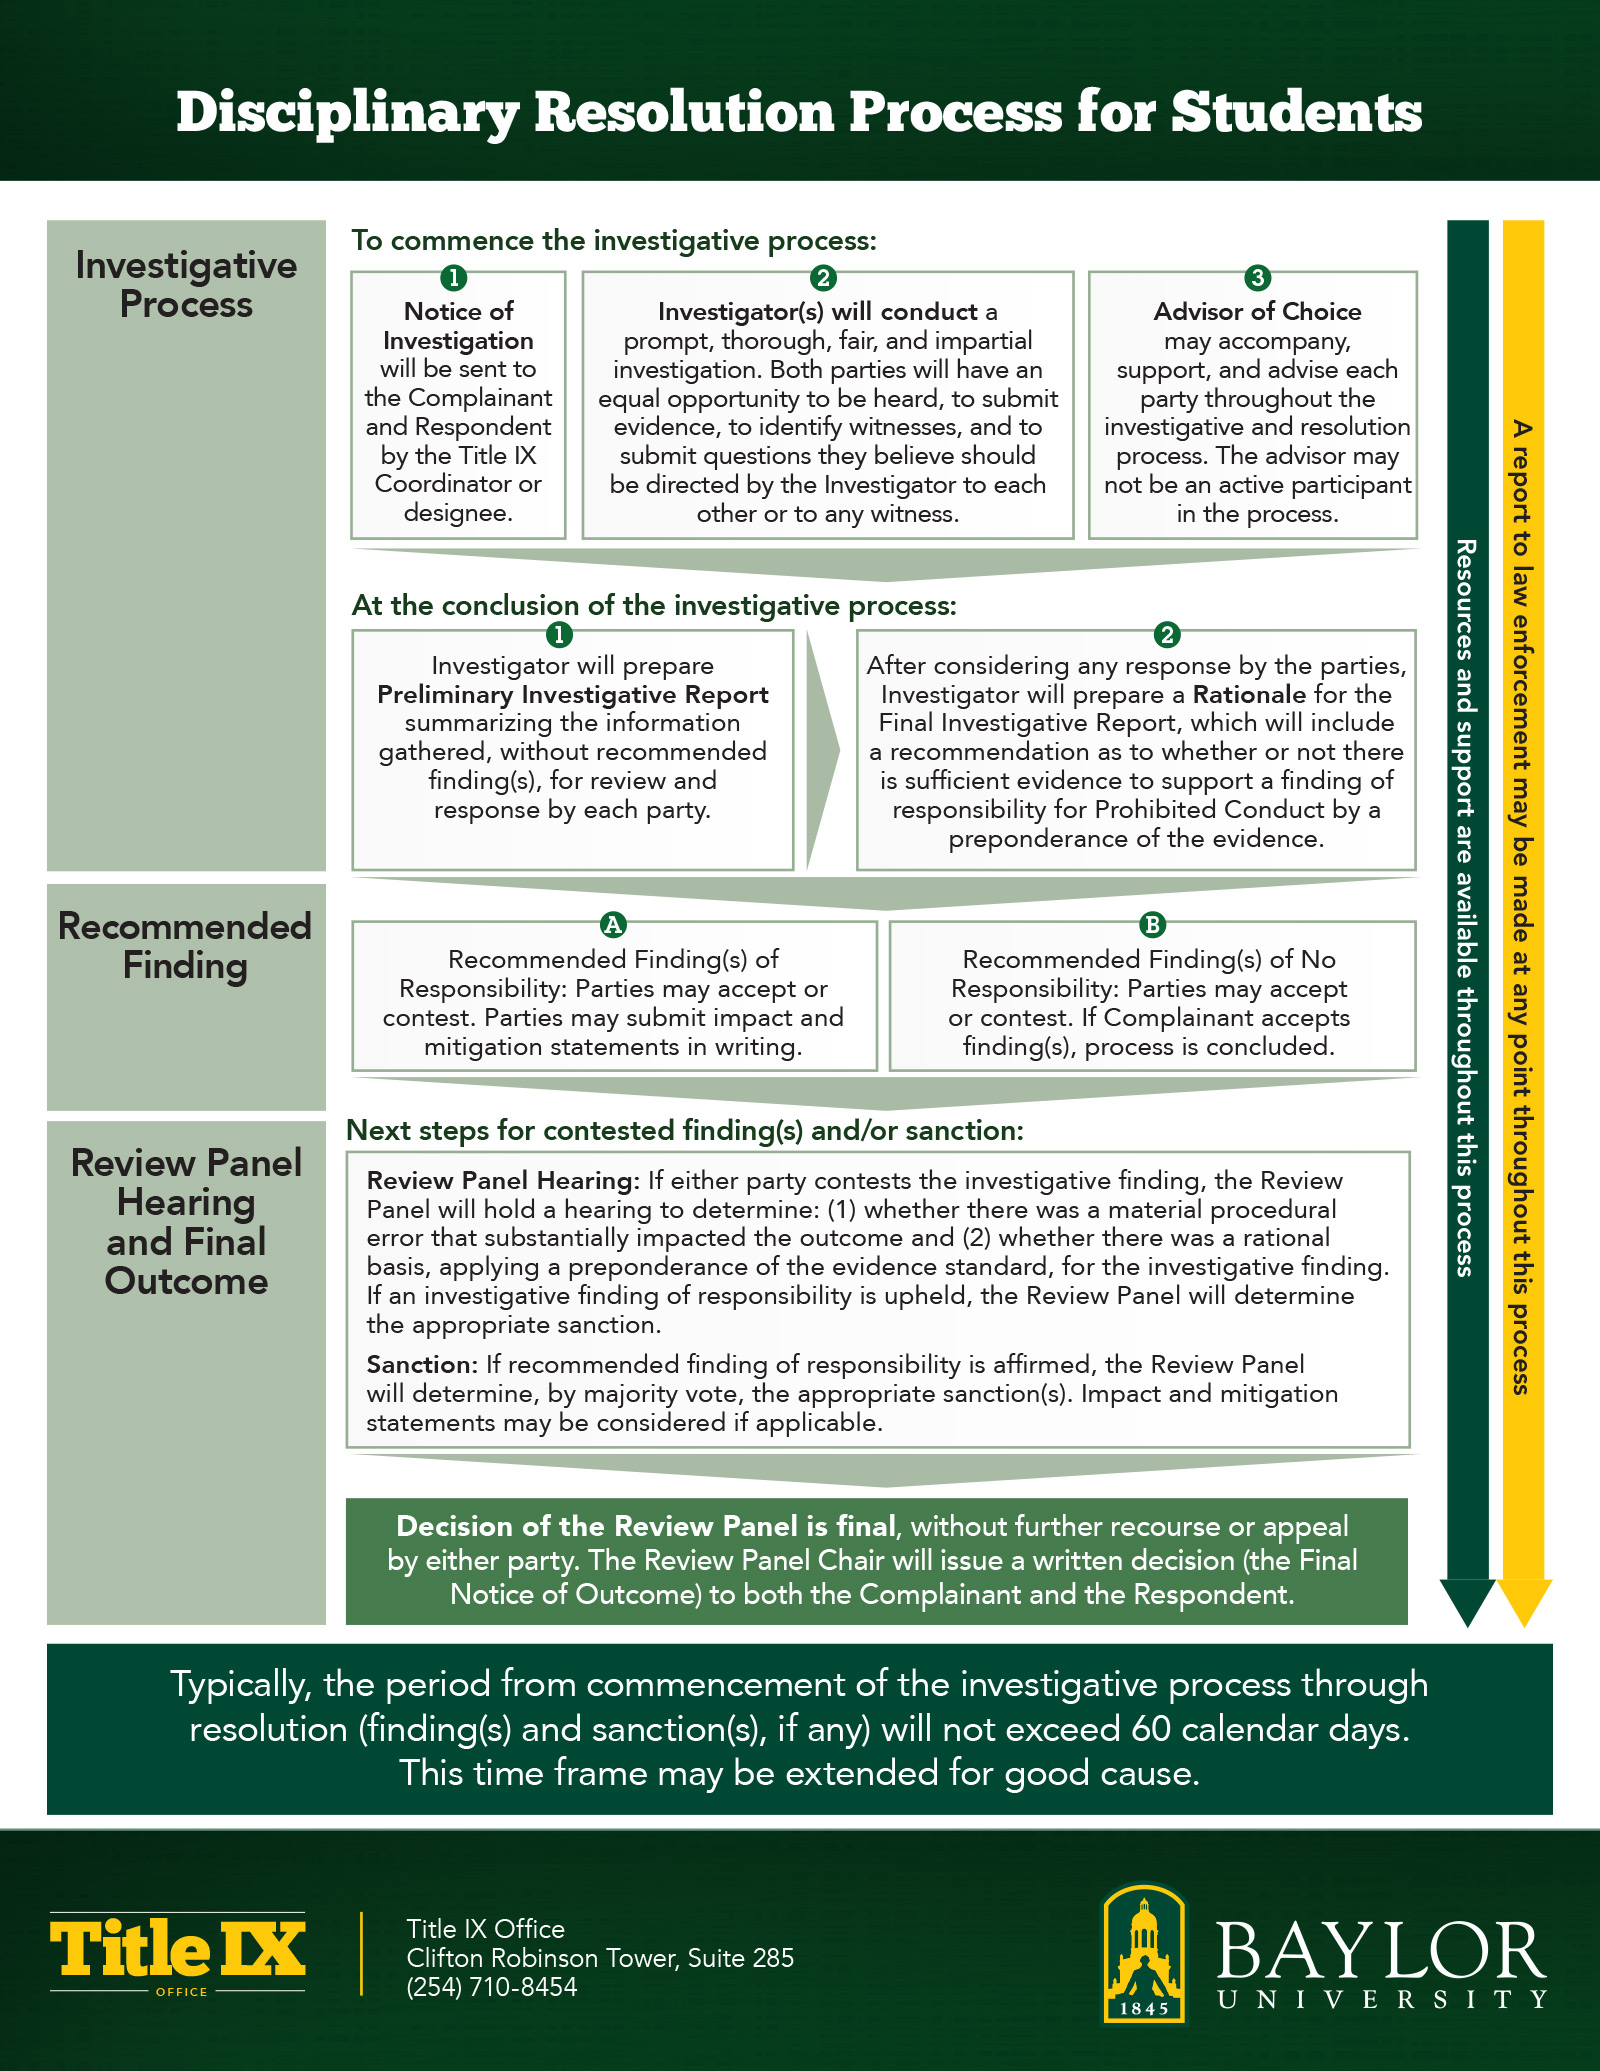 Graphic of the path of reports on disciplinary resolution process for students